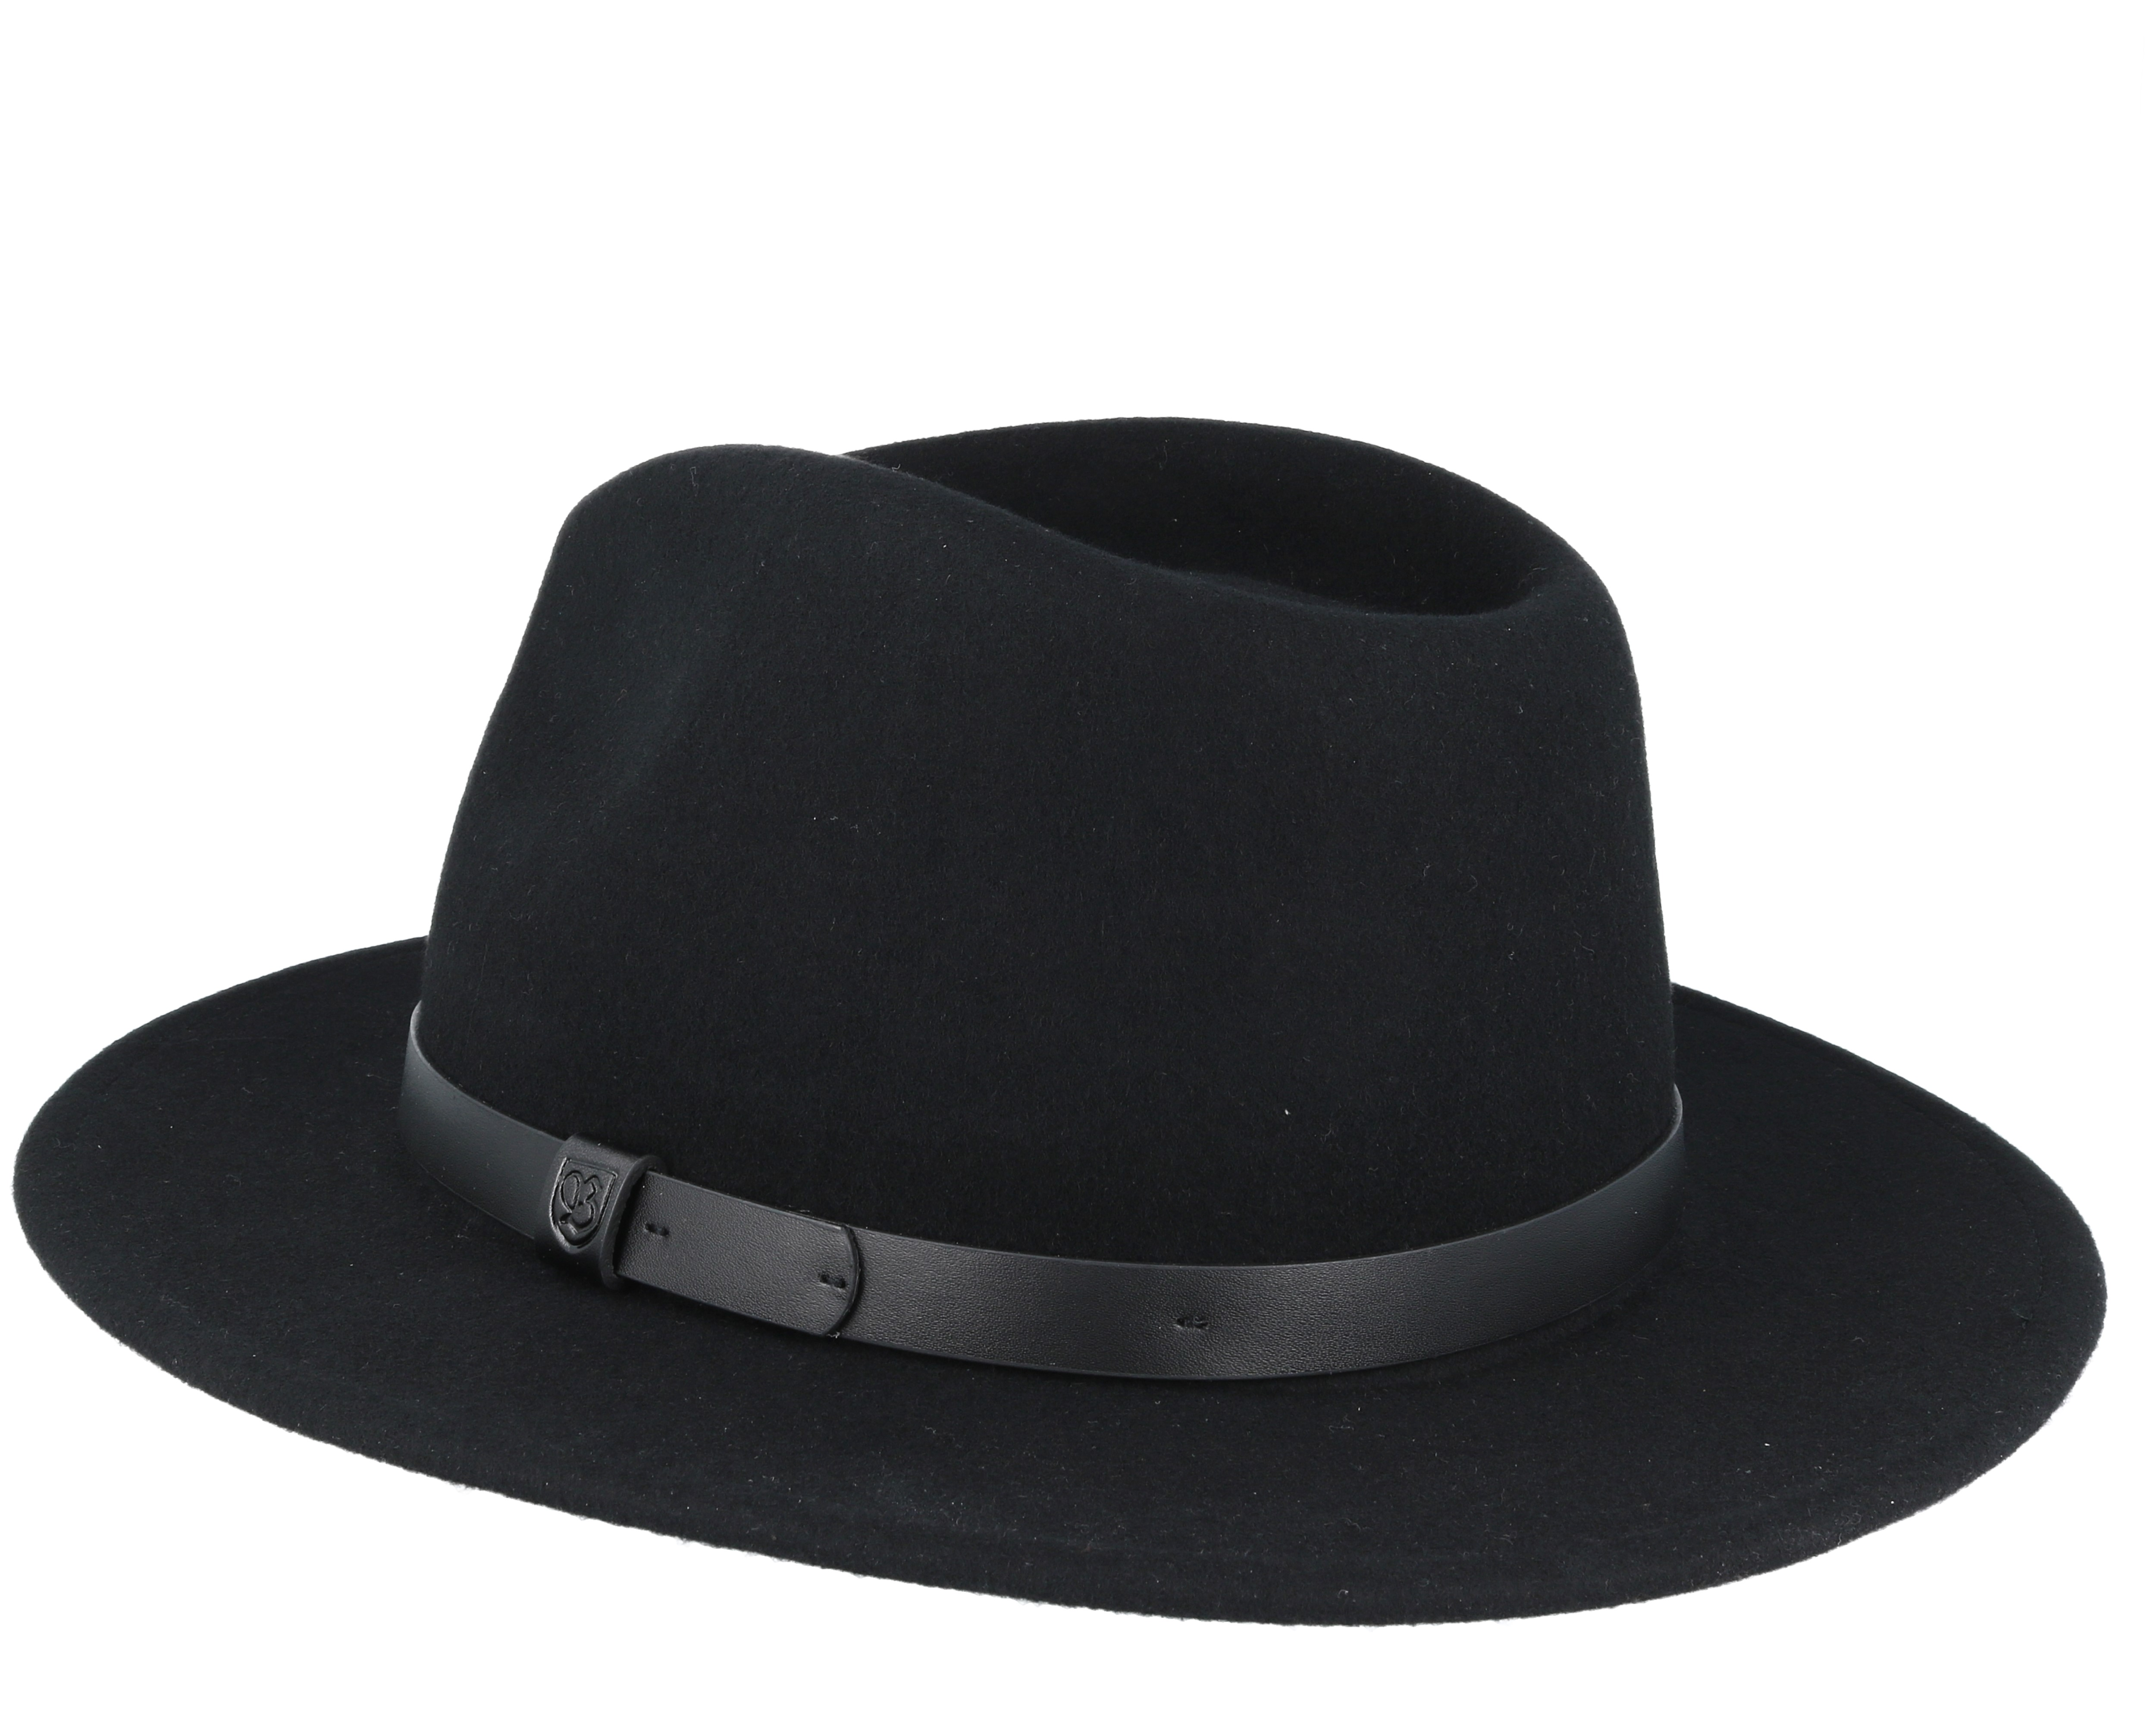 Leather Hats for Men Leather Cowboy Hats for Men Men's Hats with Ear Flaps Men's Hats Brim Hats for Men Safari Hats for Men Small Black Leather Fedora Hats Black Leather Cowboy Hat Leather Beanies for Men Stetson Fedora Hats for Men s Men's Genuine Leather Fedora Hat Made in USA: jomp16.tk x jpeg 9kB. jomp16.tk